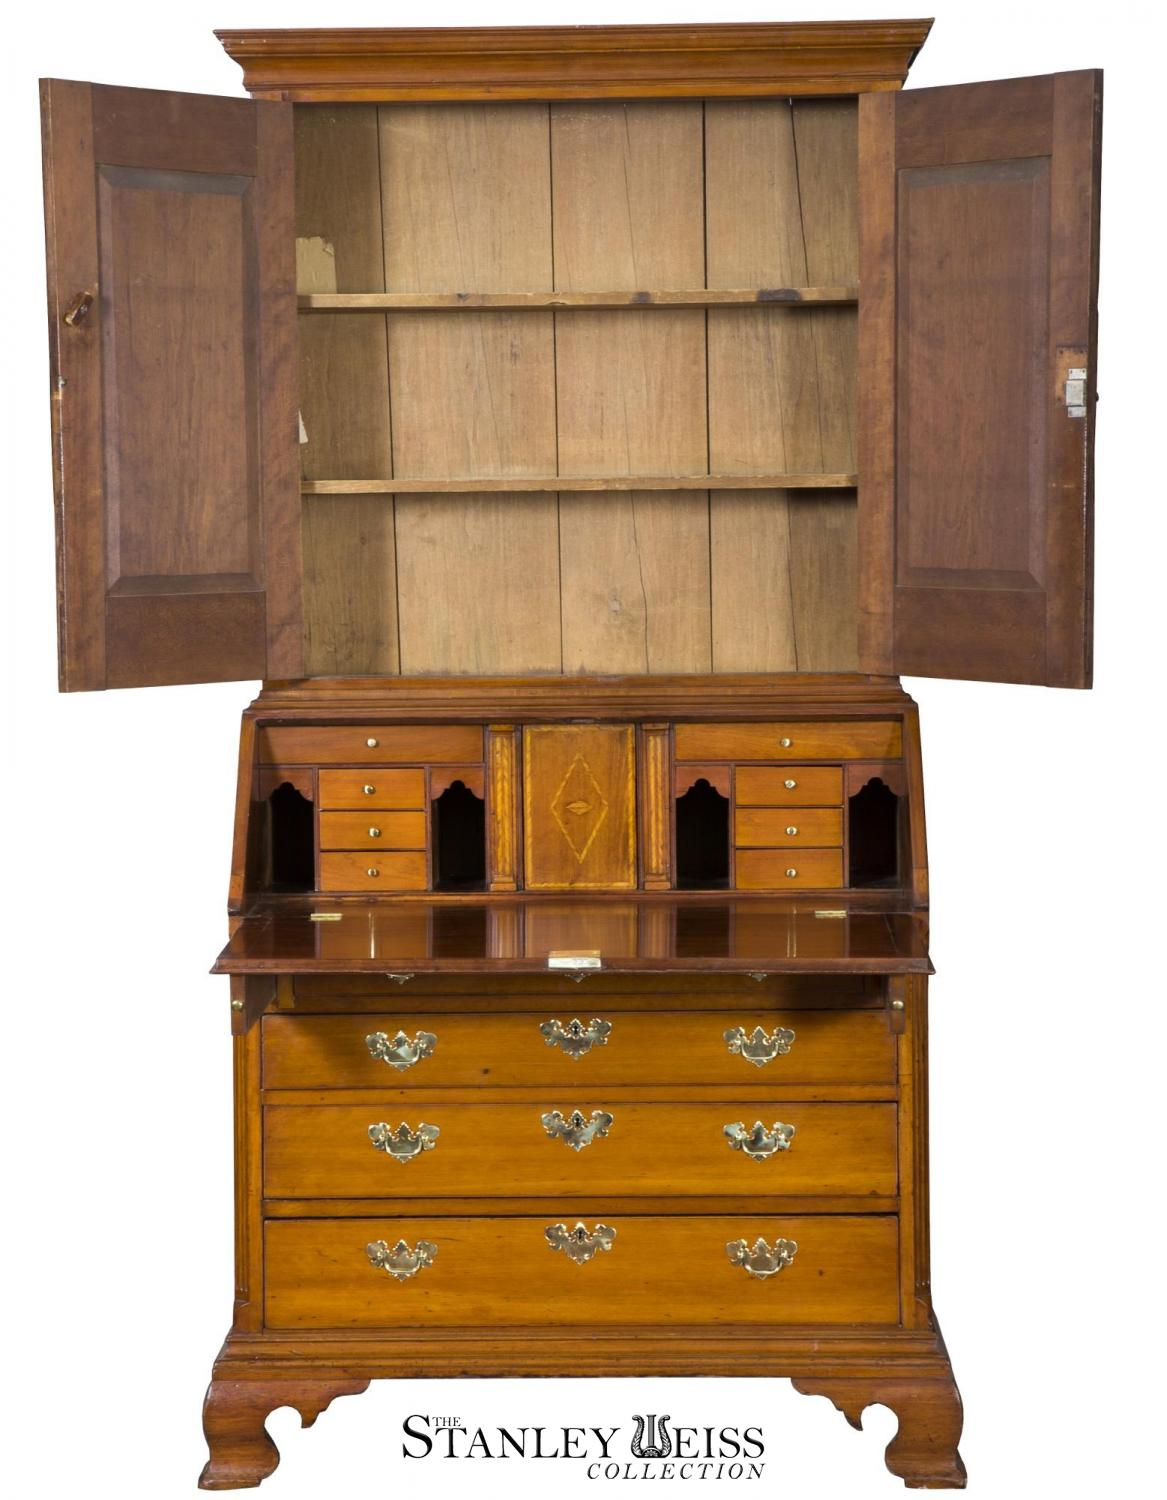 Chippendale Style - c. 1780 - Bookcase - Cherry